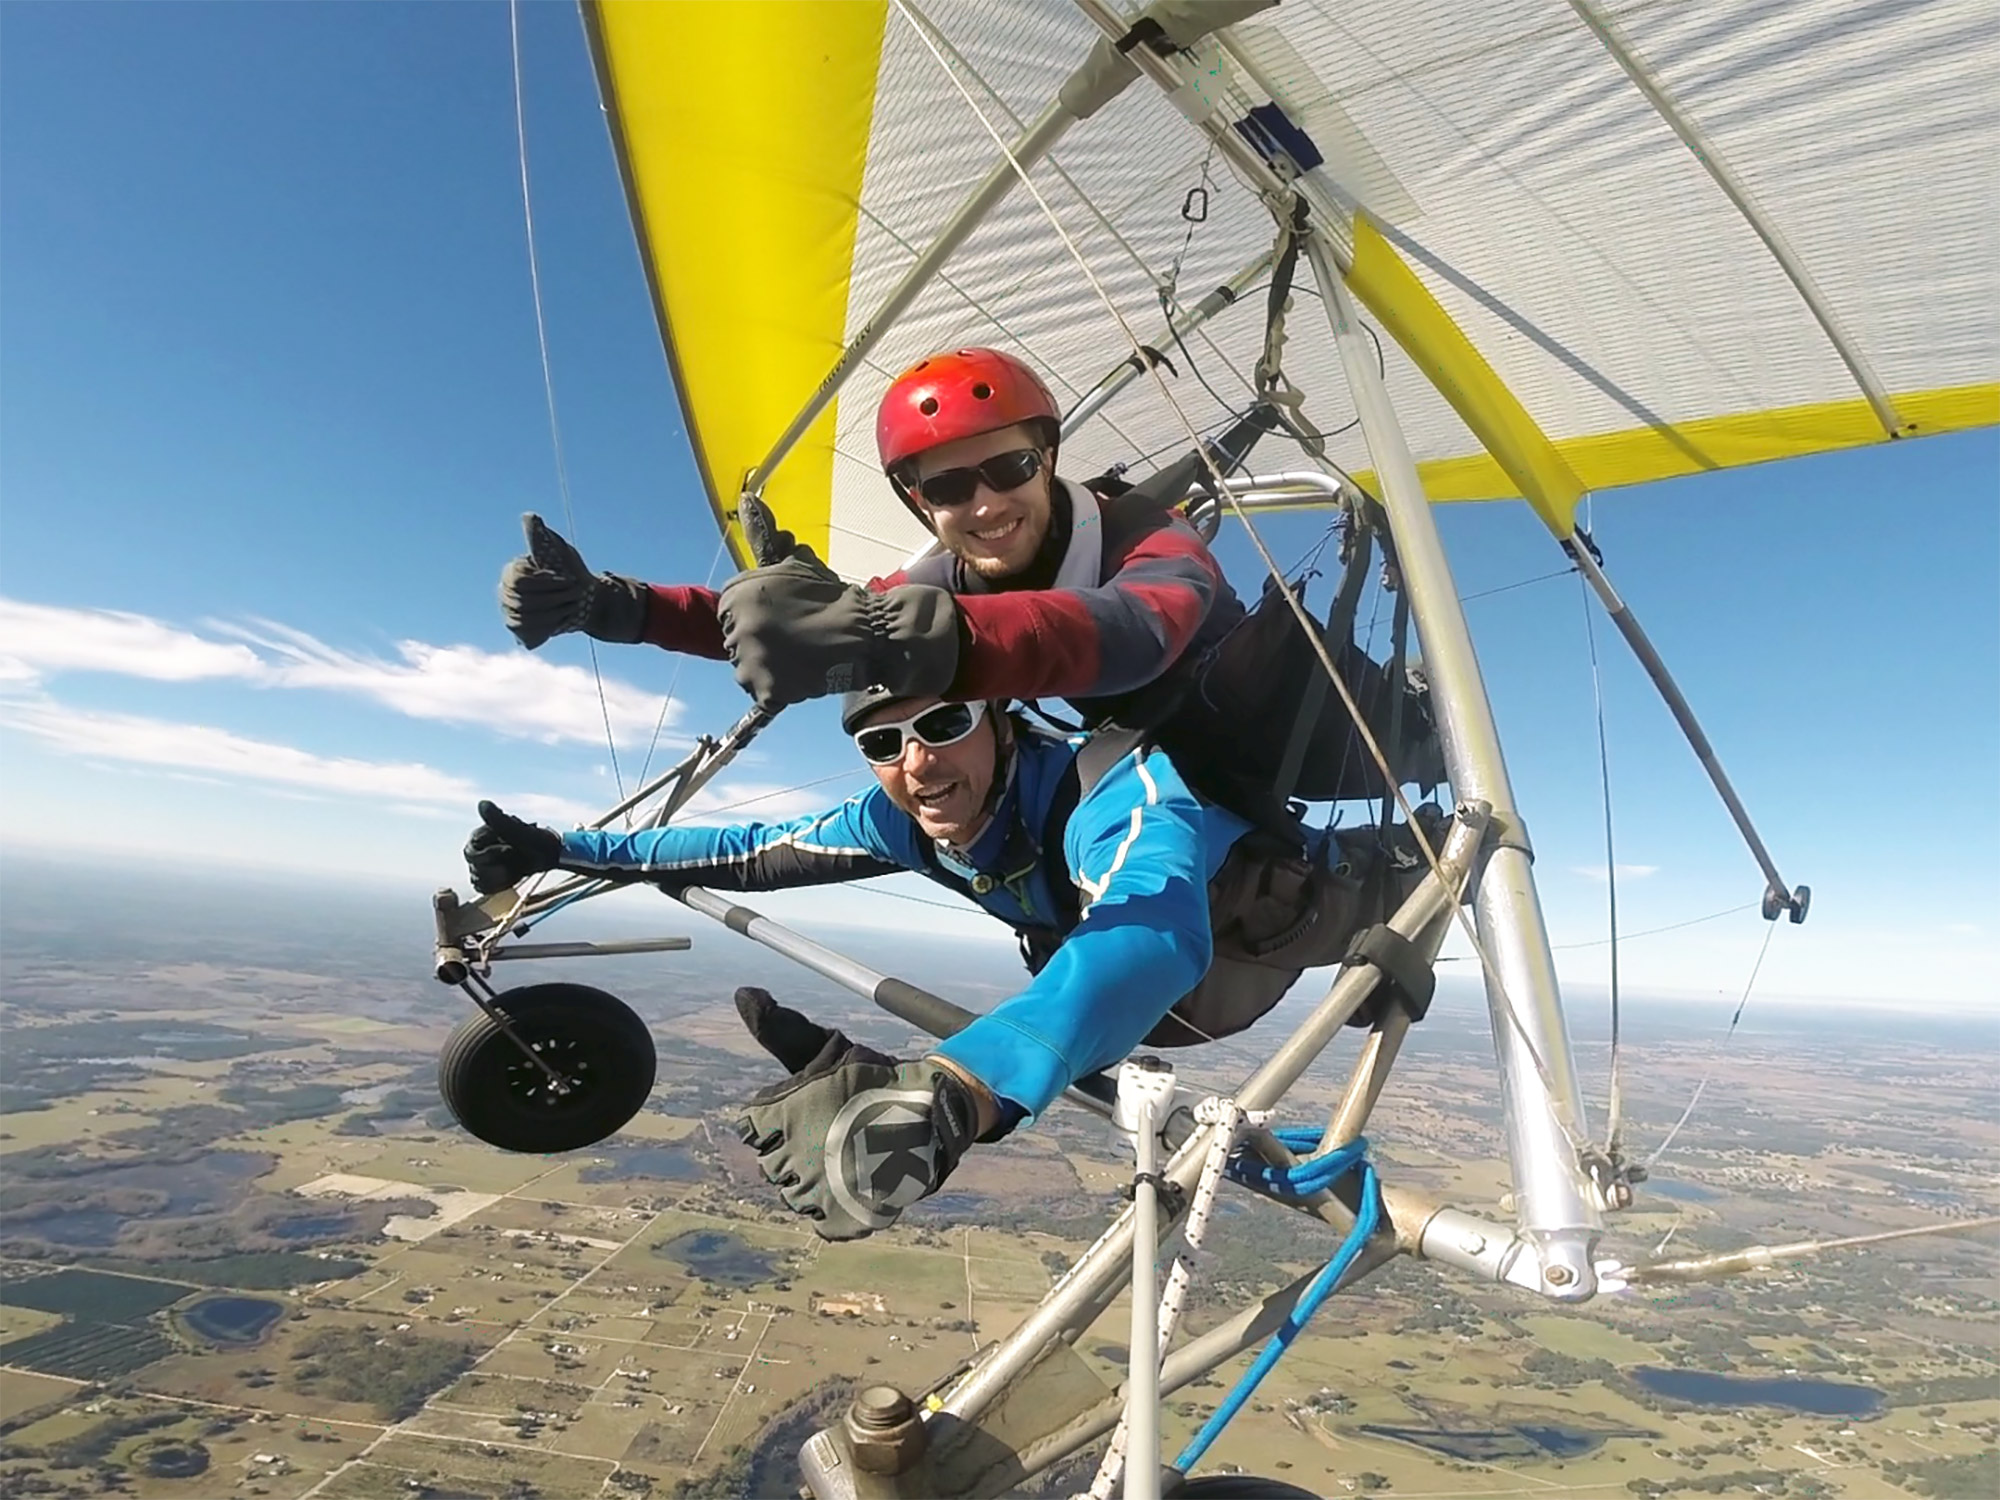 Ron Stauffer flying in a hang glider, smiling and holding two thumbs up.